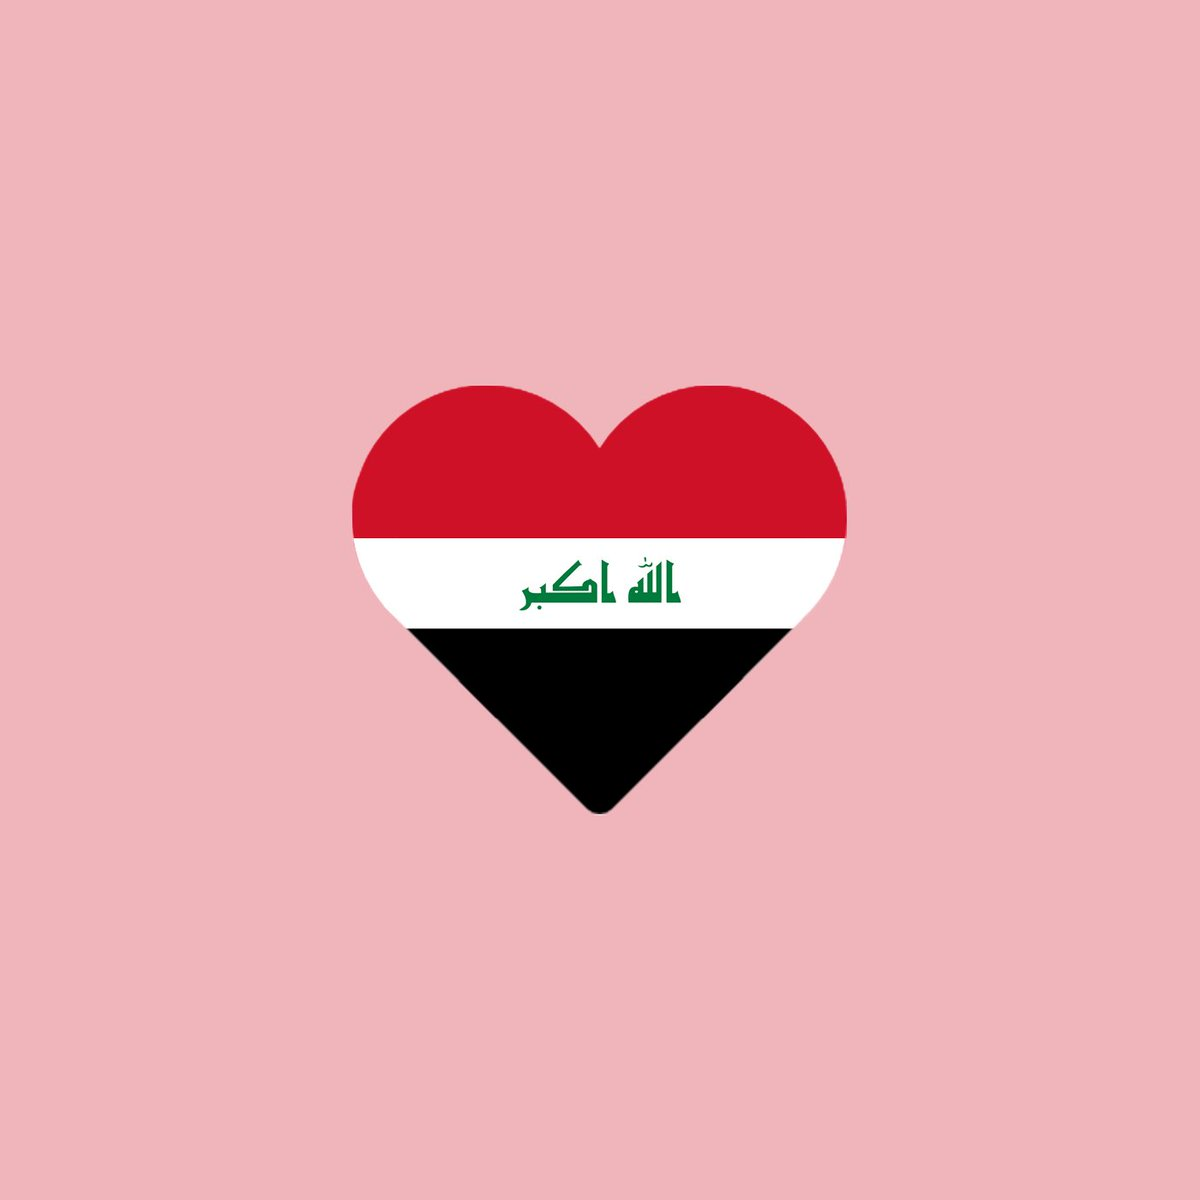 Our hearts go out to Baghdad, Iraq where at least 125 people were killed by two bombs claimed by IS militants.